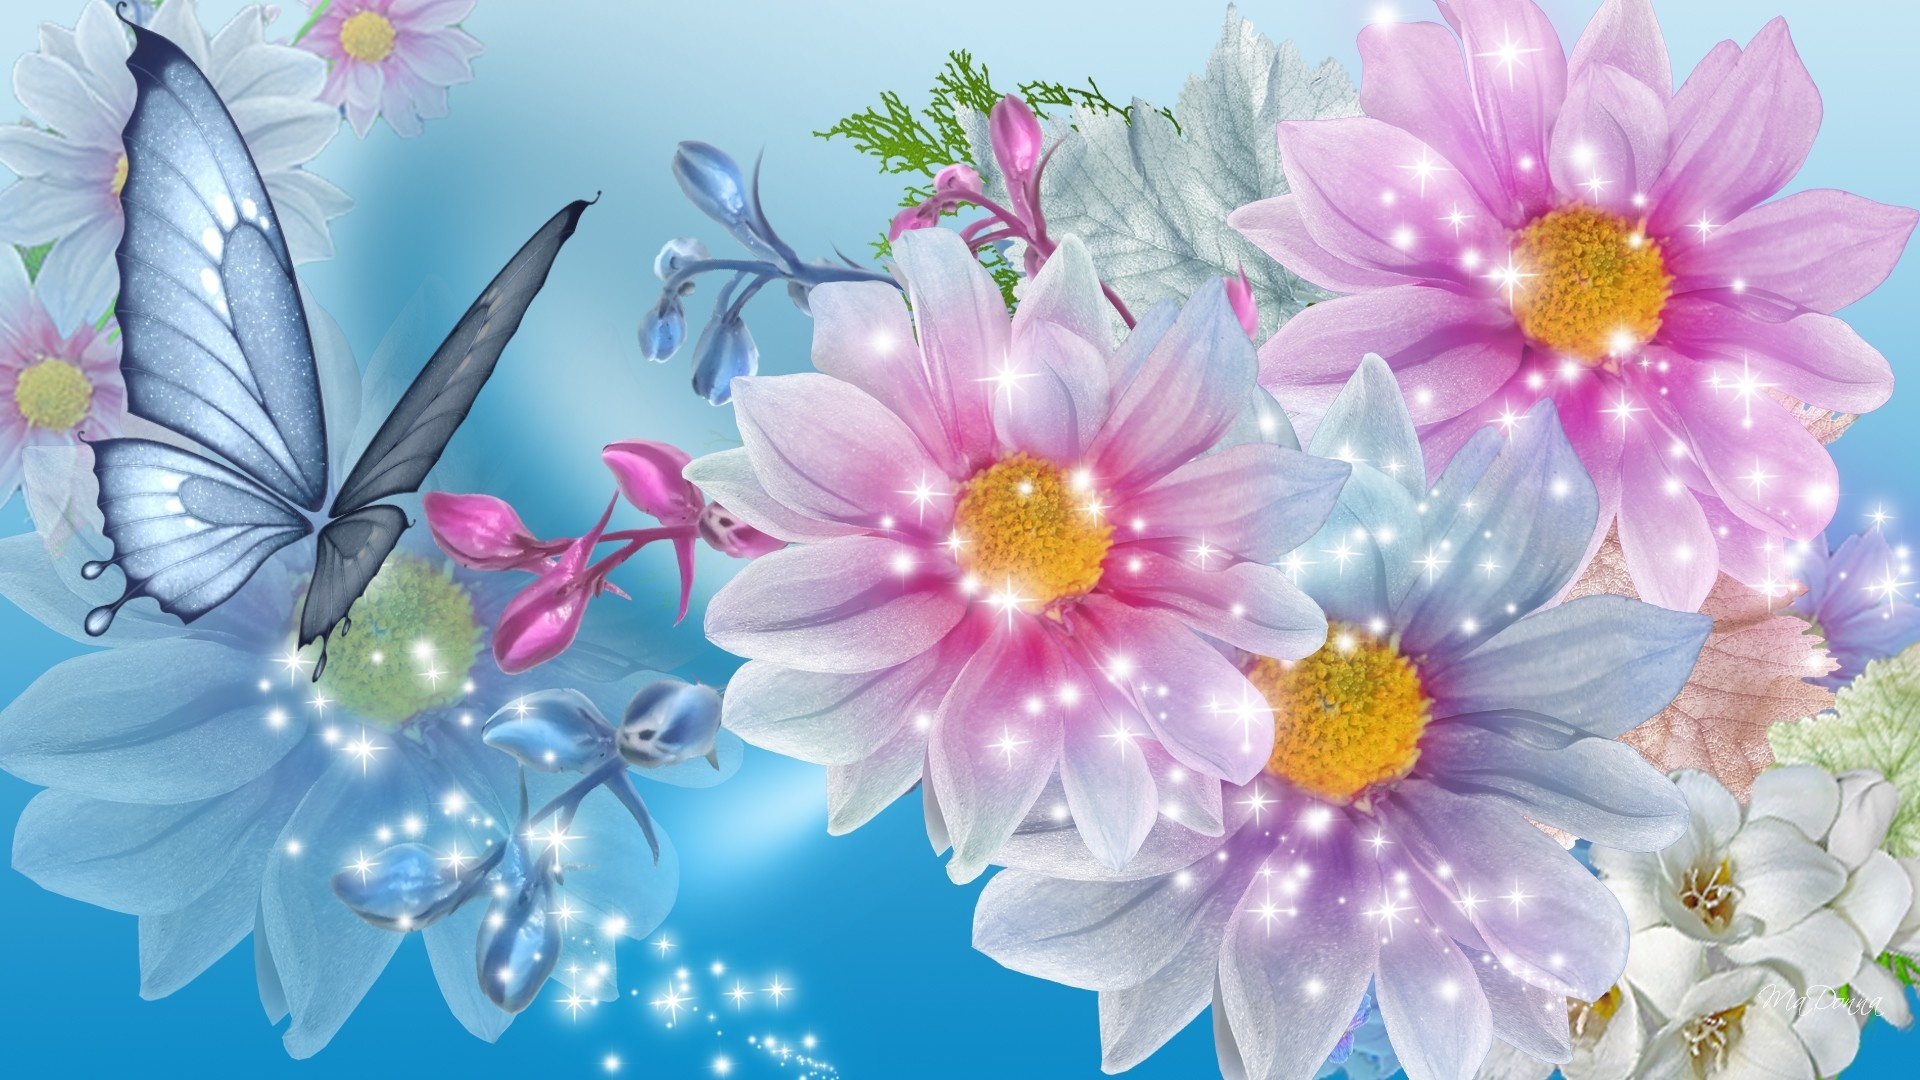 Beautiful flower wallpaper for Girls Desktop Wallpaper 1920x1080